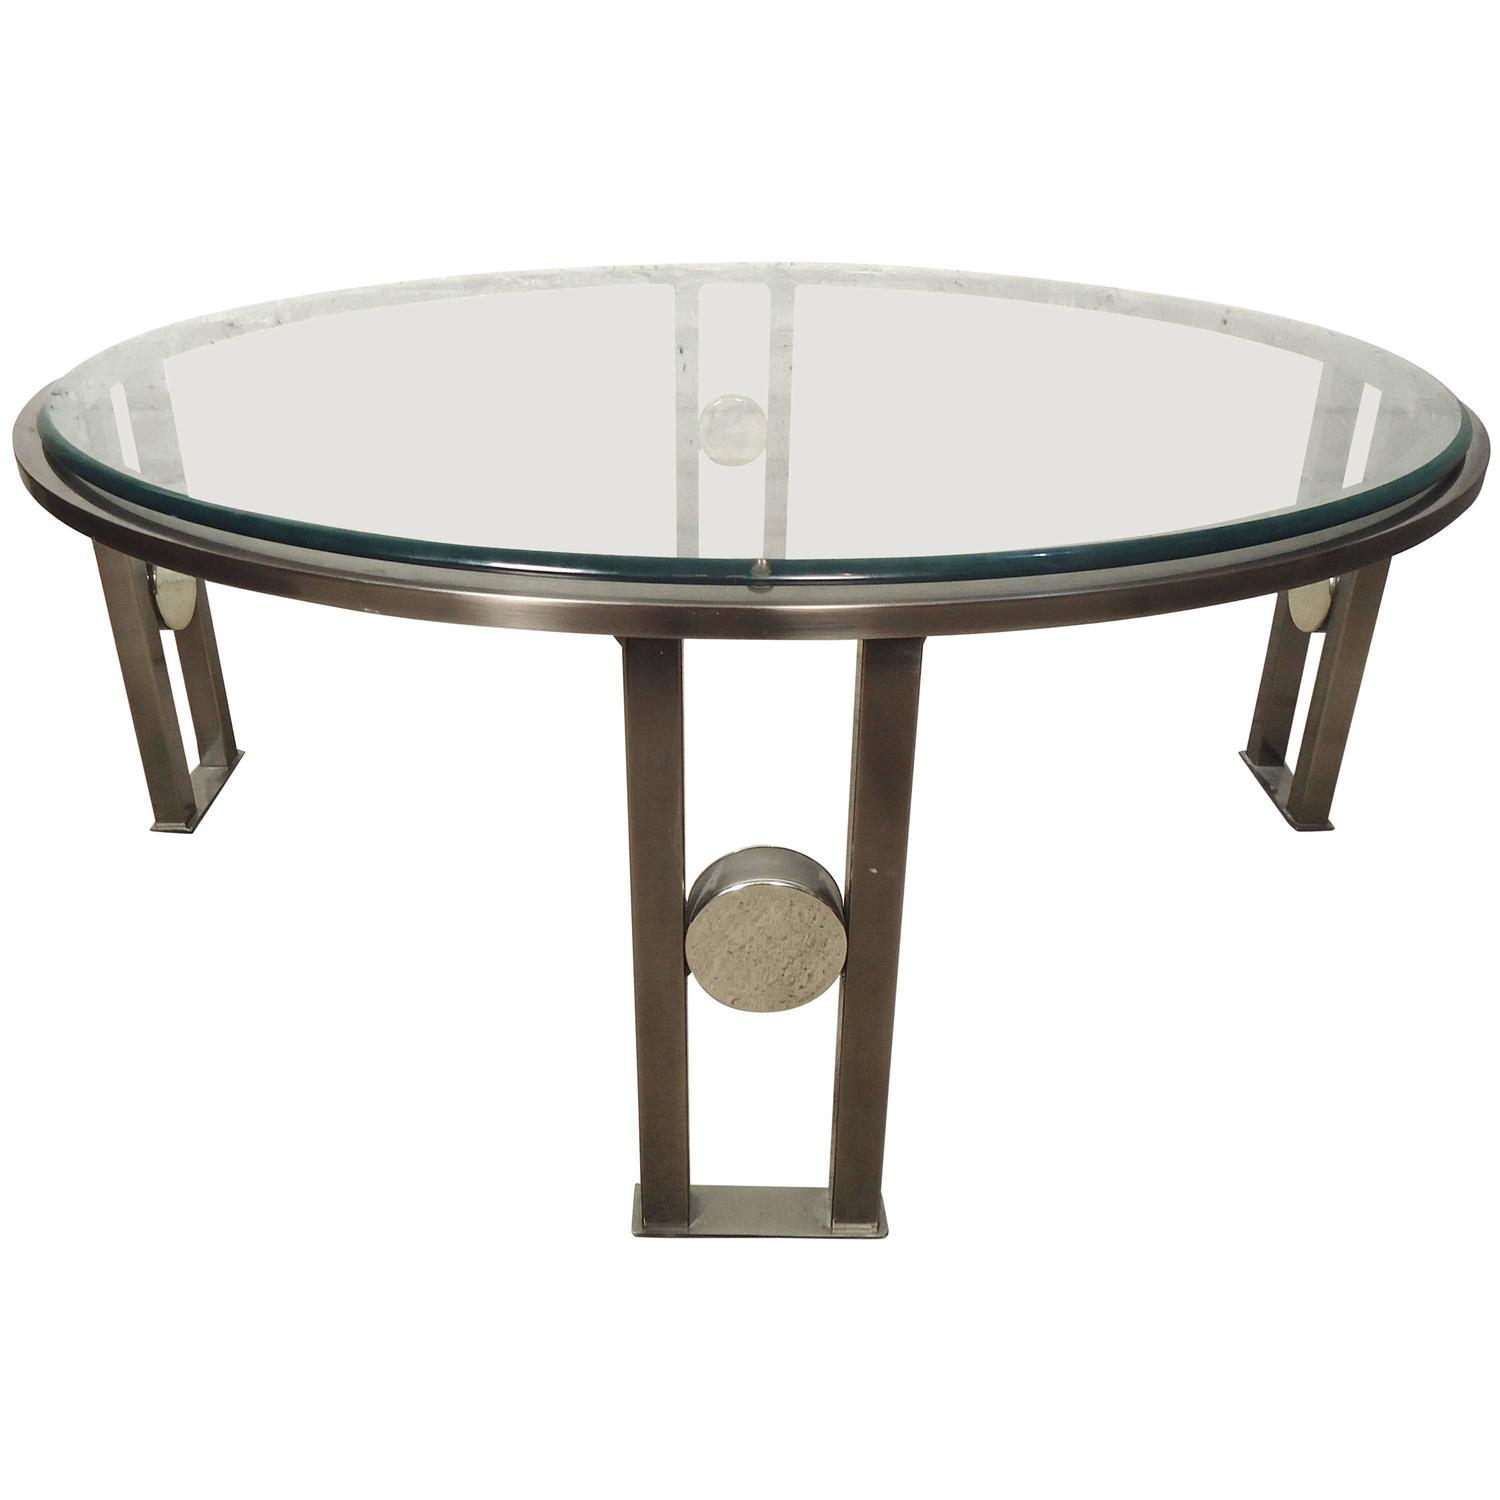 Round glass top coffee table at 1stdibs coffee table glass for Round glass coffee tables for sale